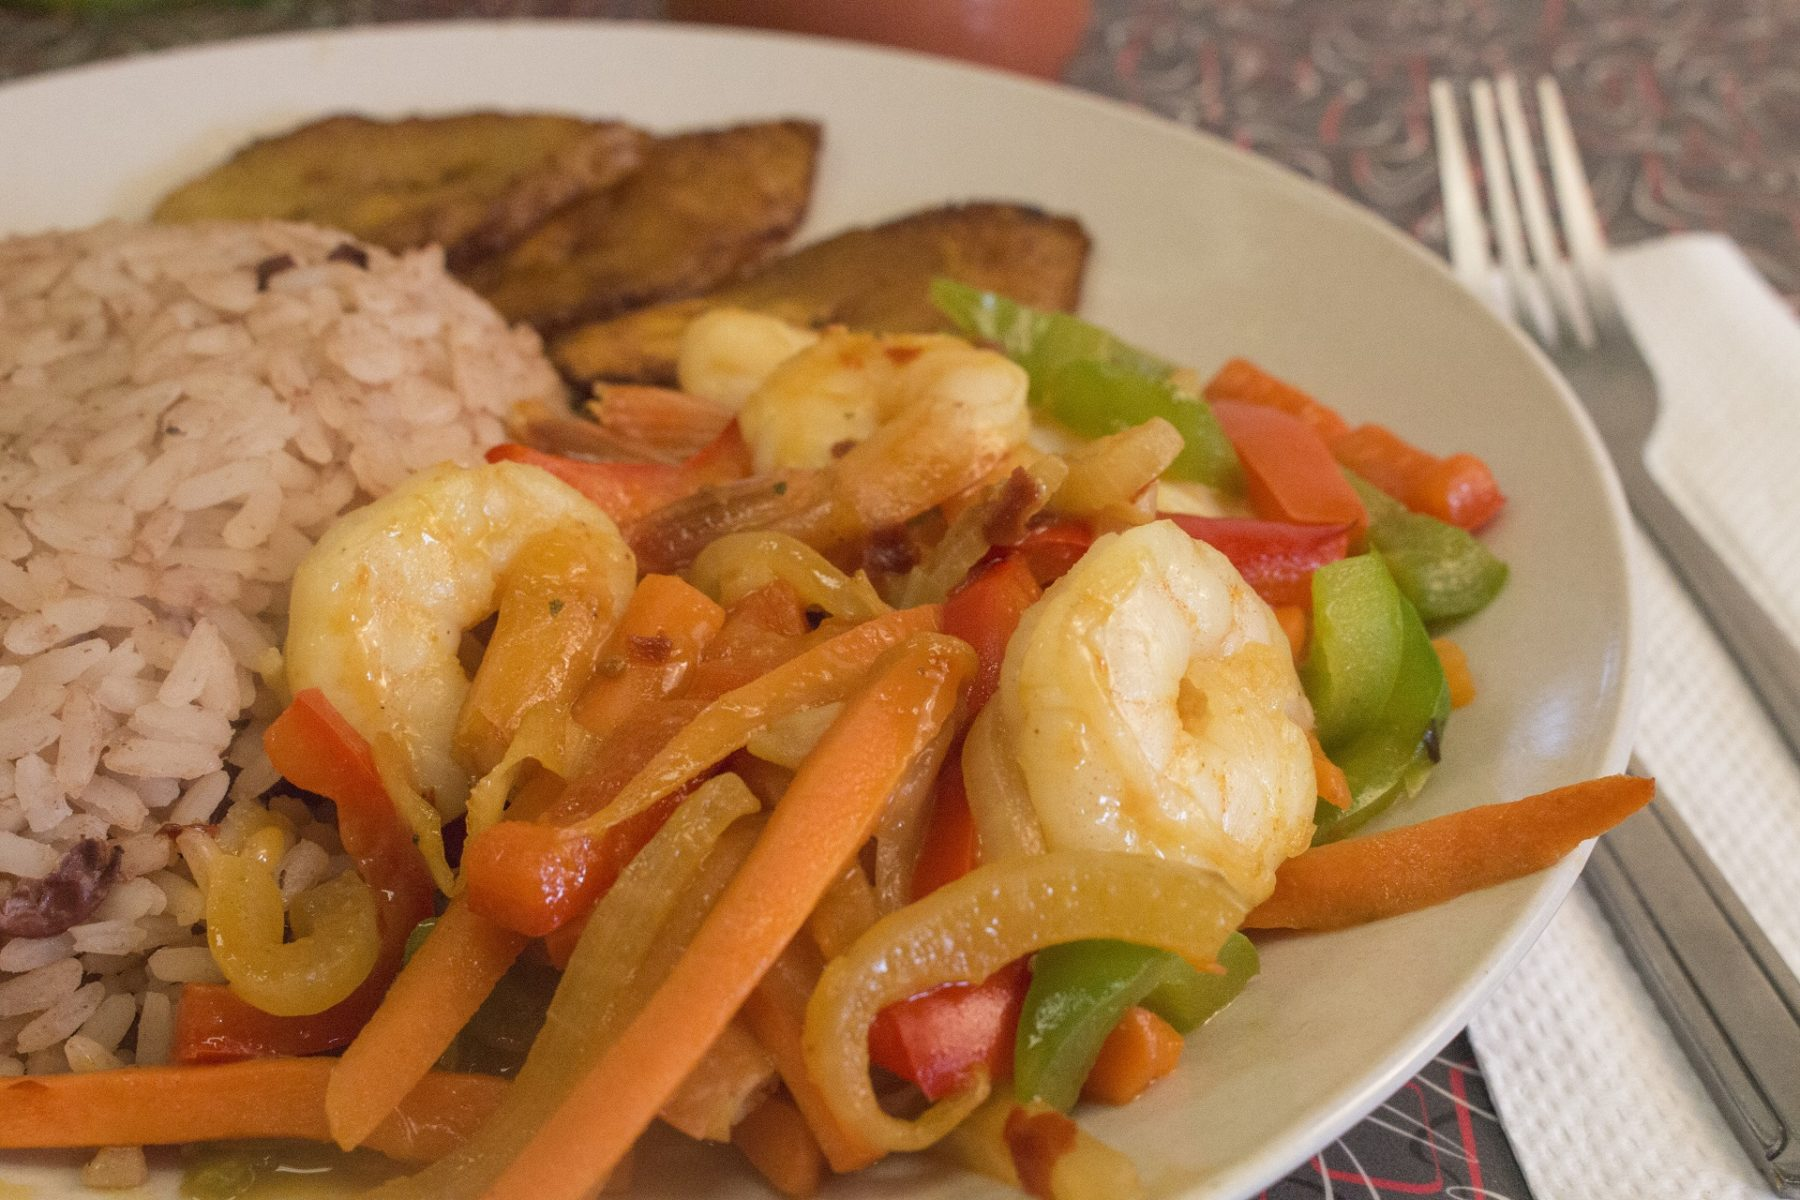 Island delight authentic jamaican cuisine for Authentic jamaican cuisine